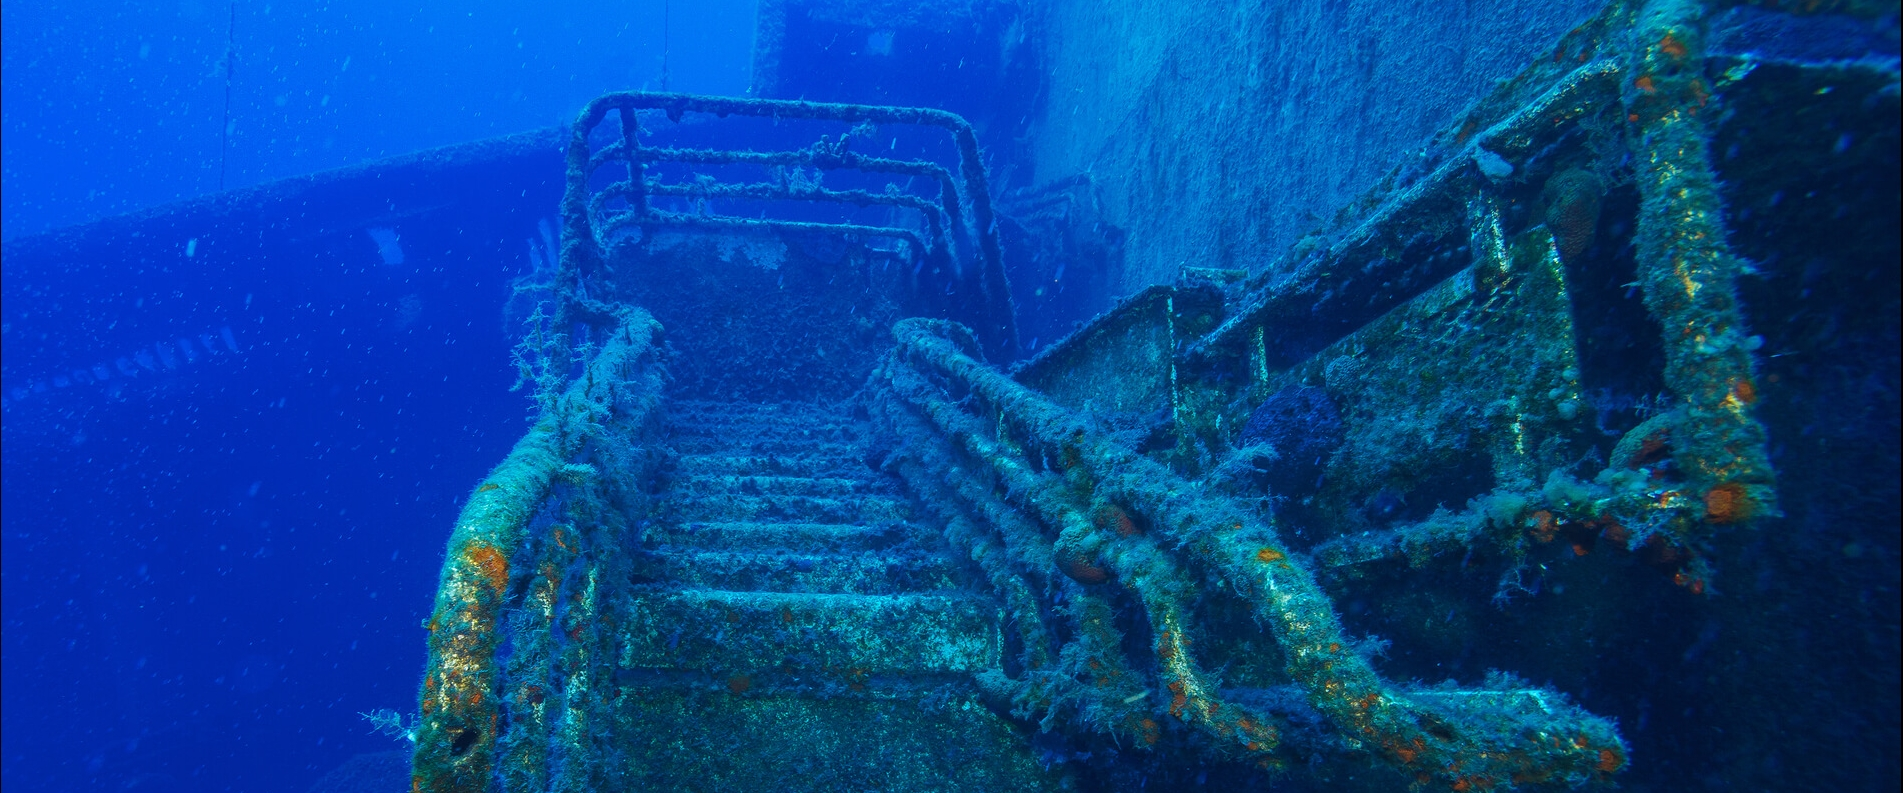 Diving Zenobia Ship Wreck